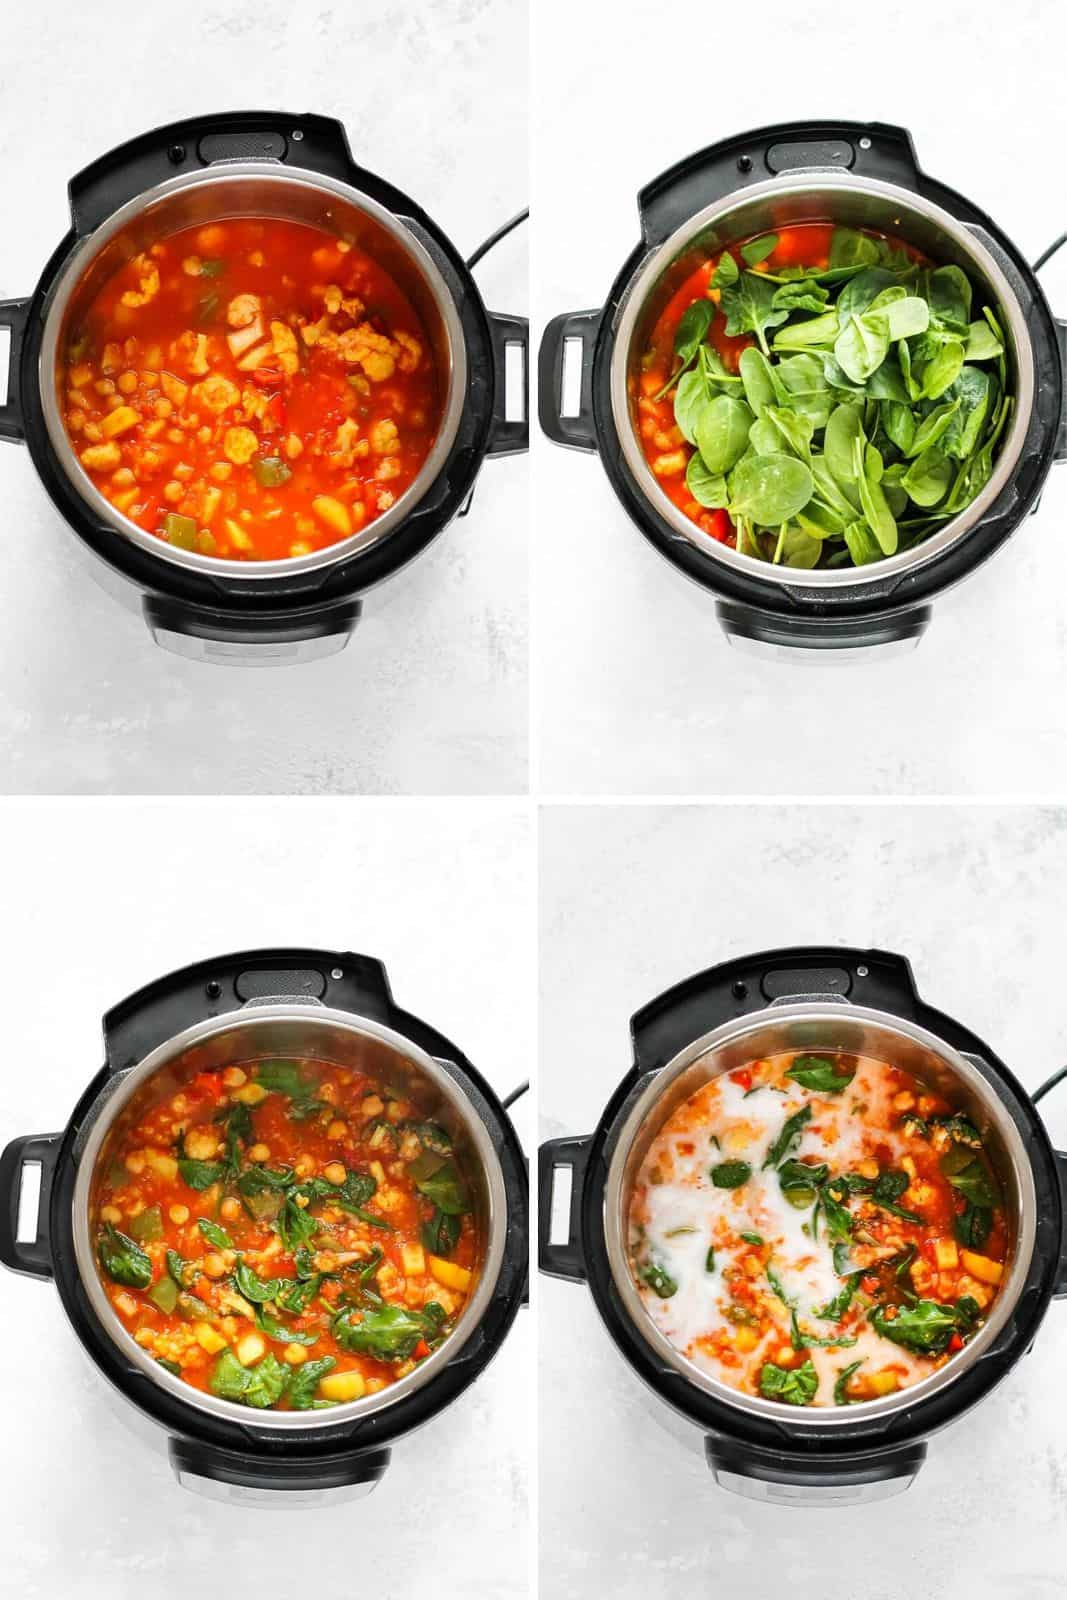 photo collage of chickpea curry being made in an instant pot